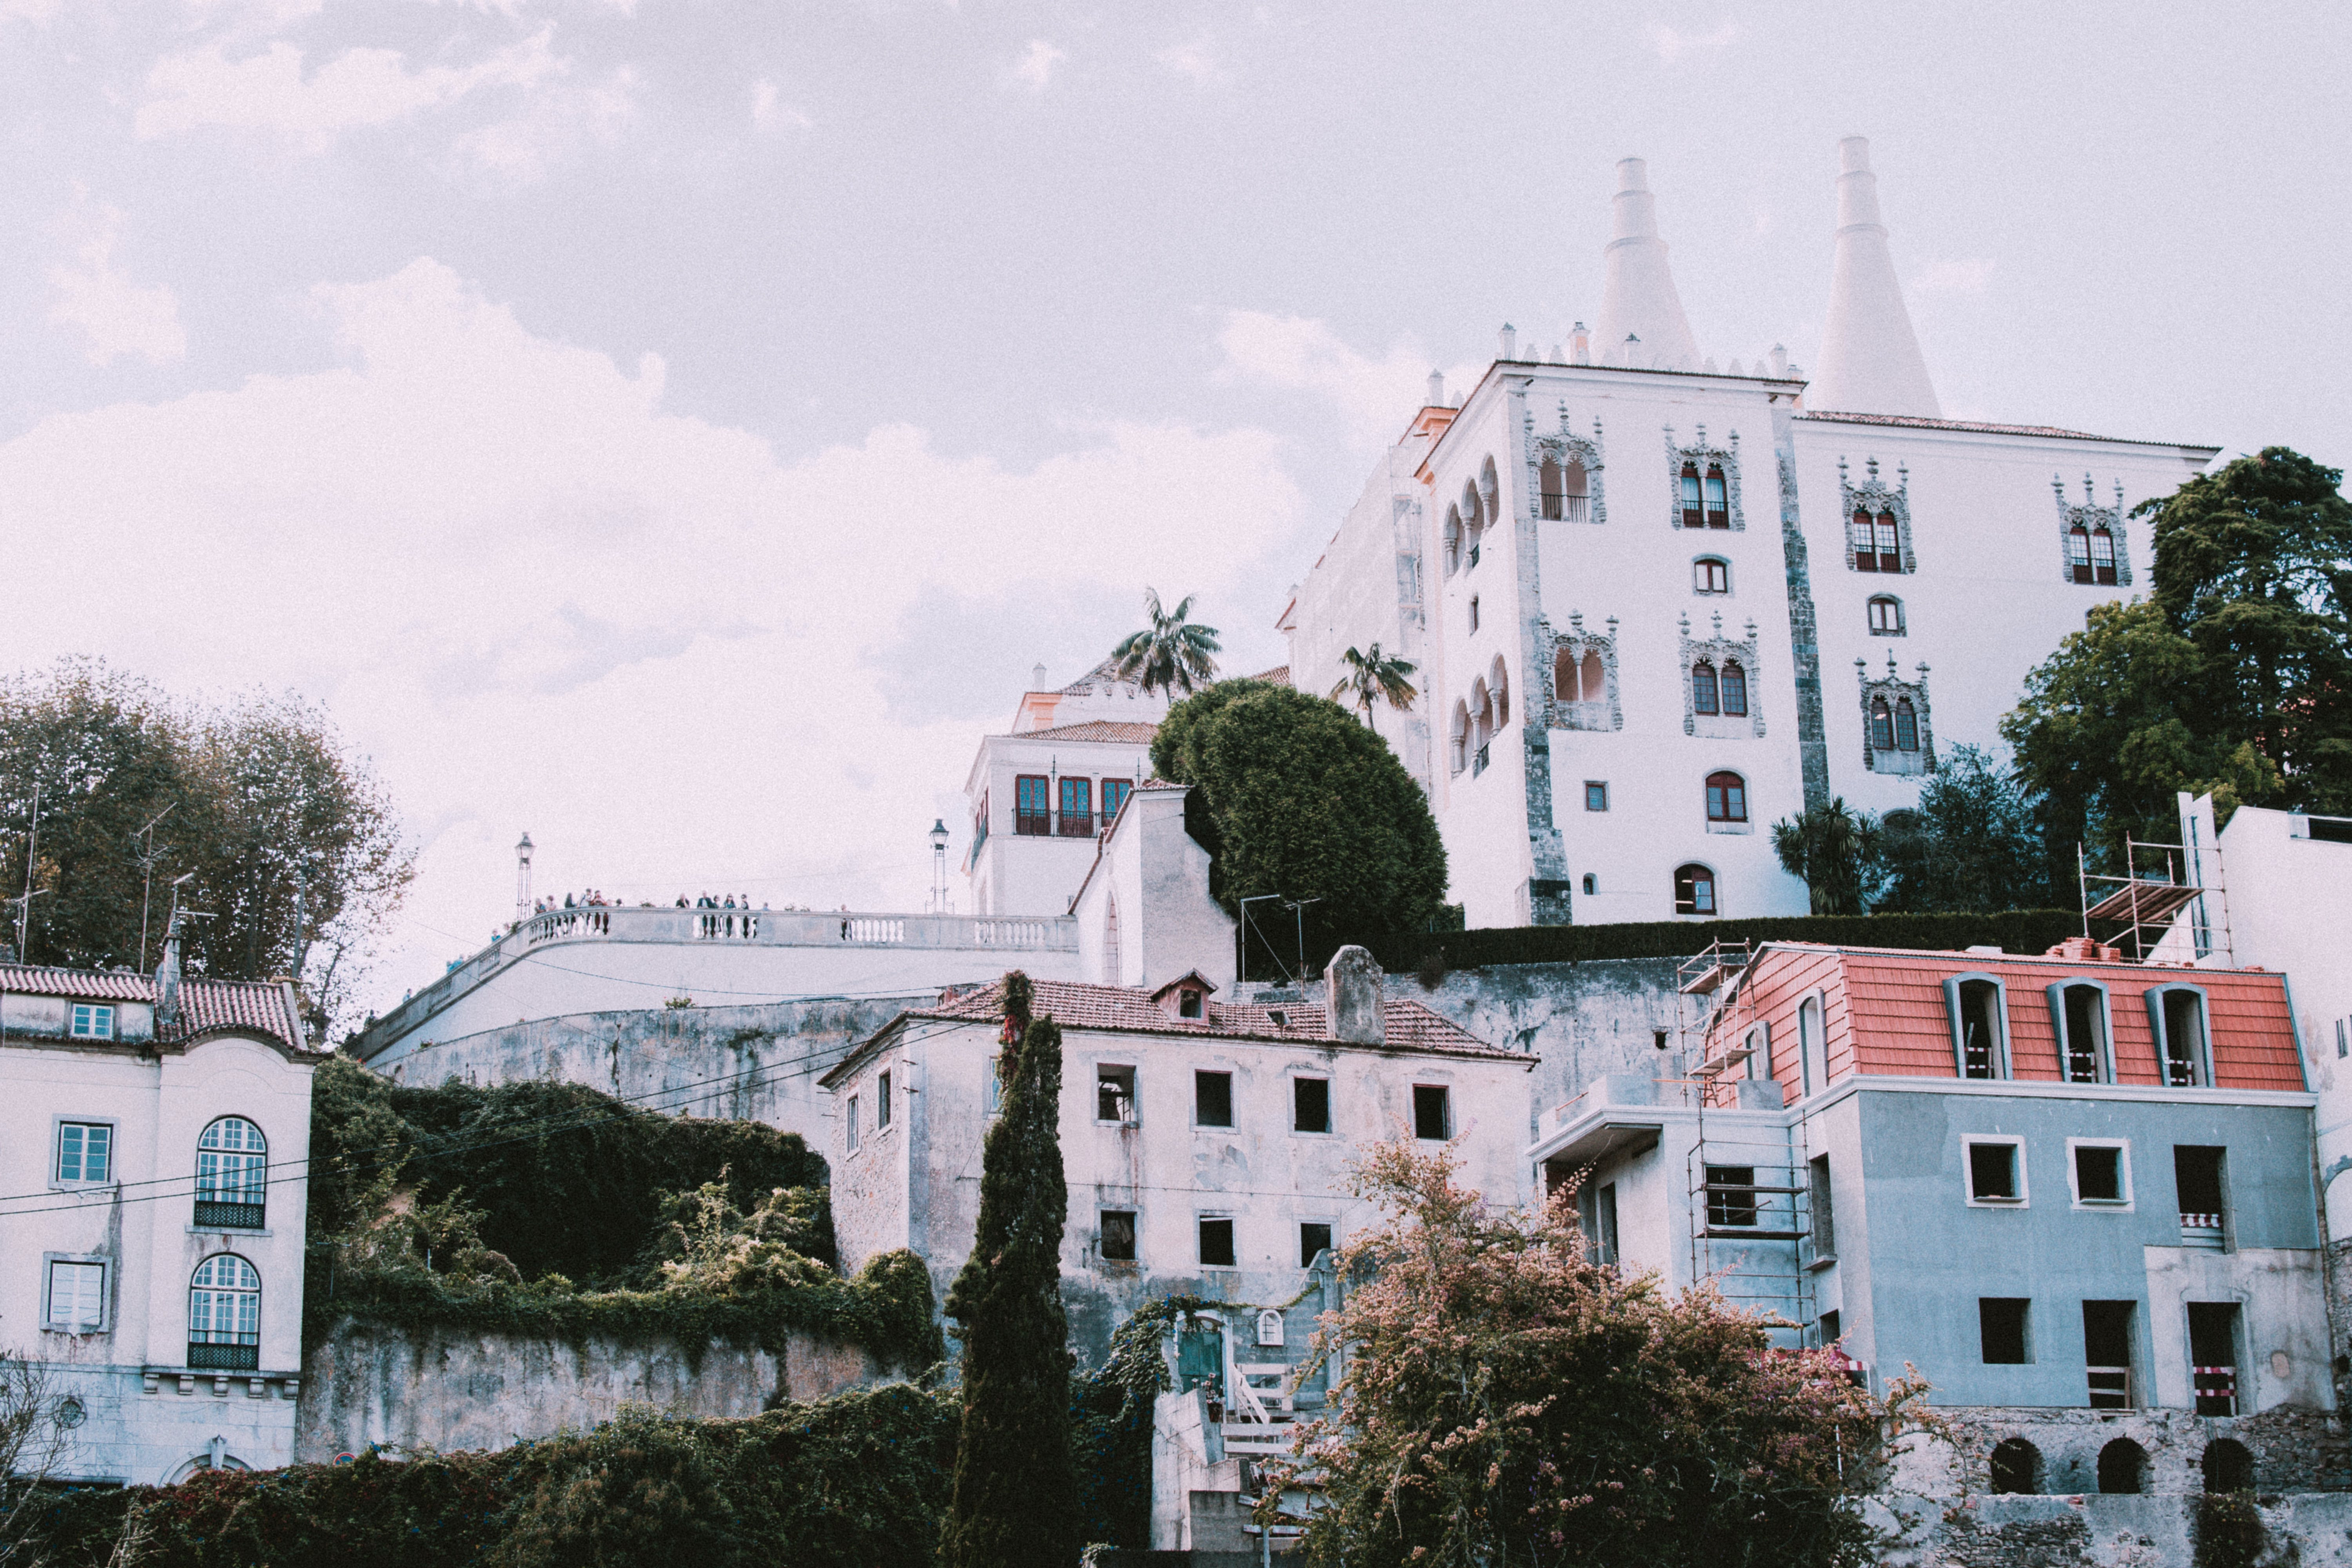 Photo of Buildings in Portugal